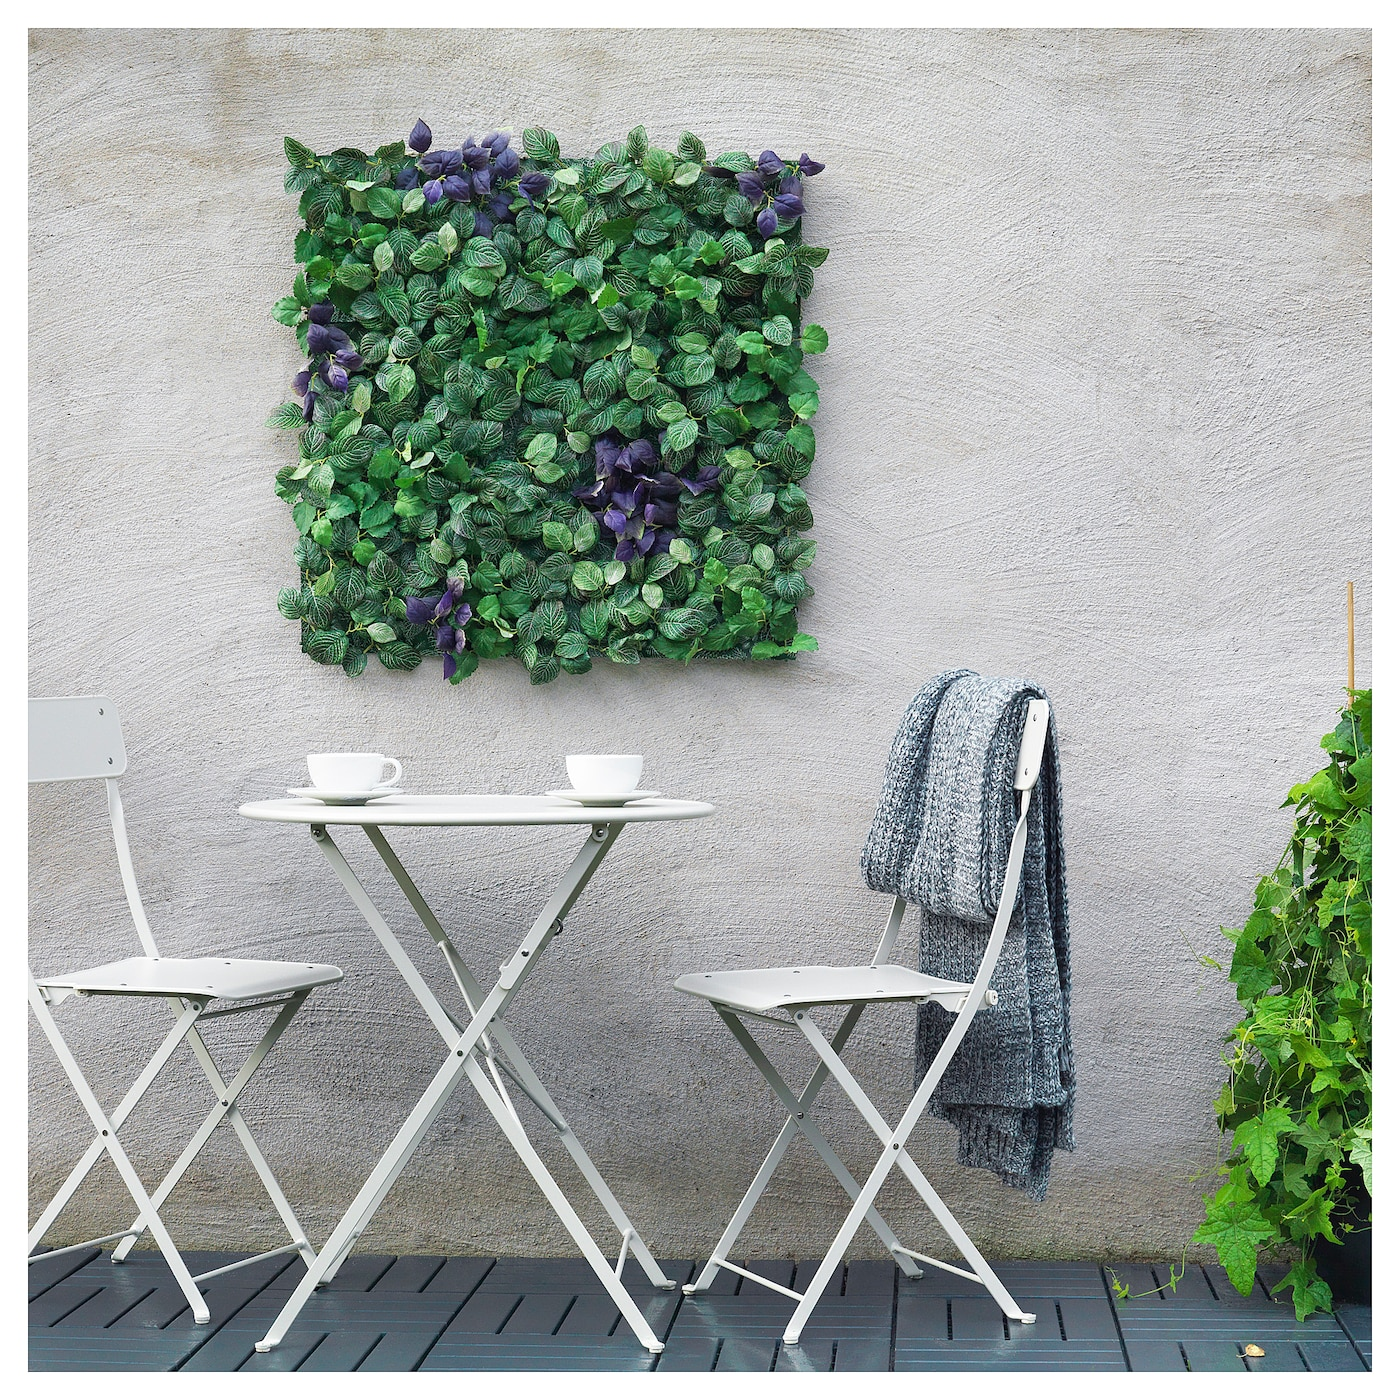 fejka plante artificielle fixation murale int rieur ext rieur vert mauve 26x26 cm ikea. Black Bedroom Furniture Sets. Home Design Ideas